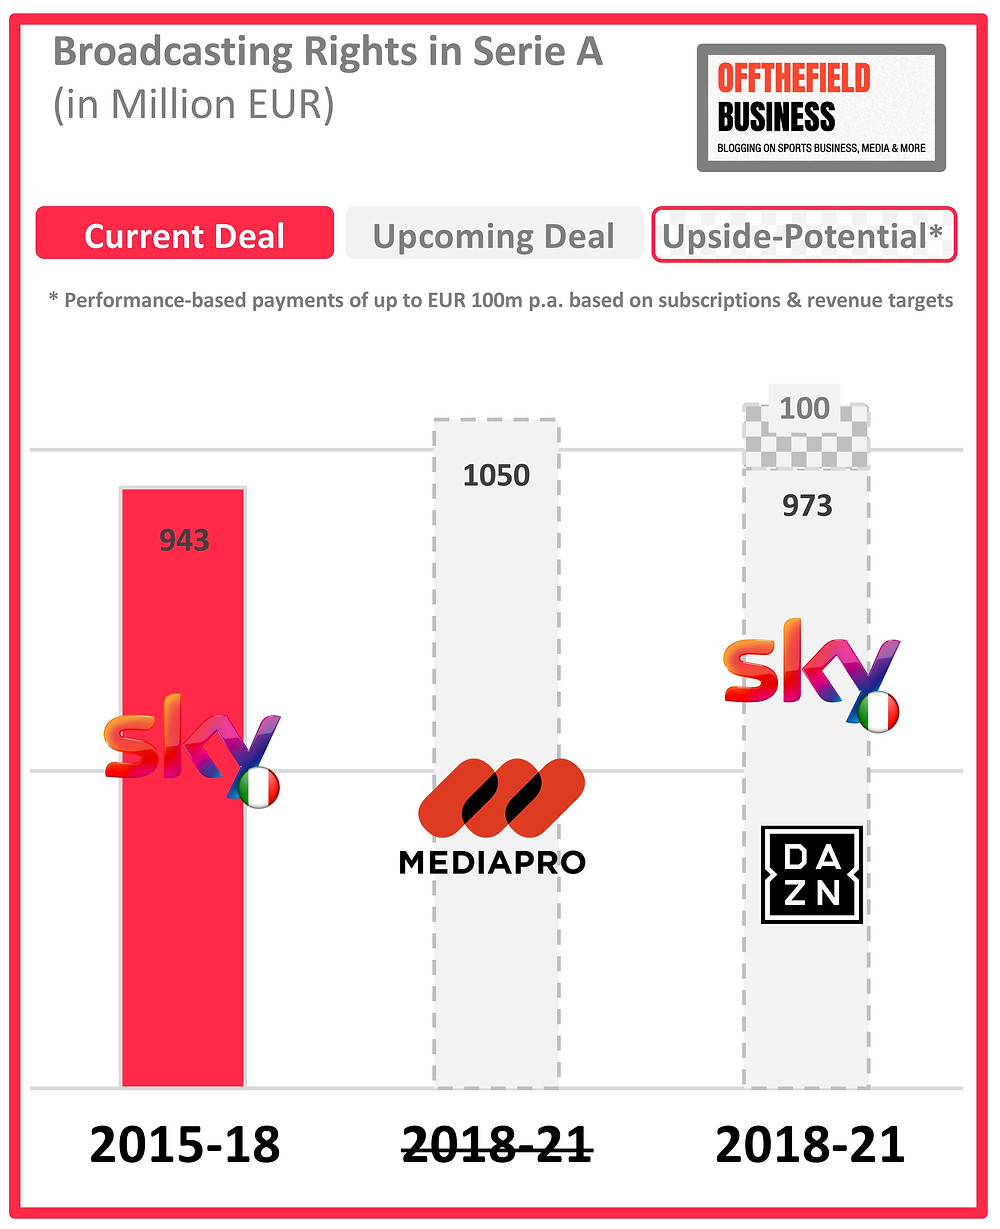 Audiovisual Broadcasting Rights in Serie A (2015-21)